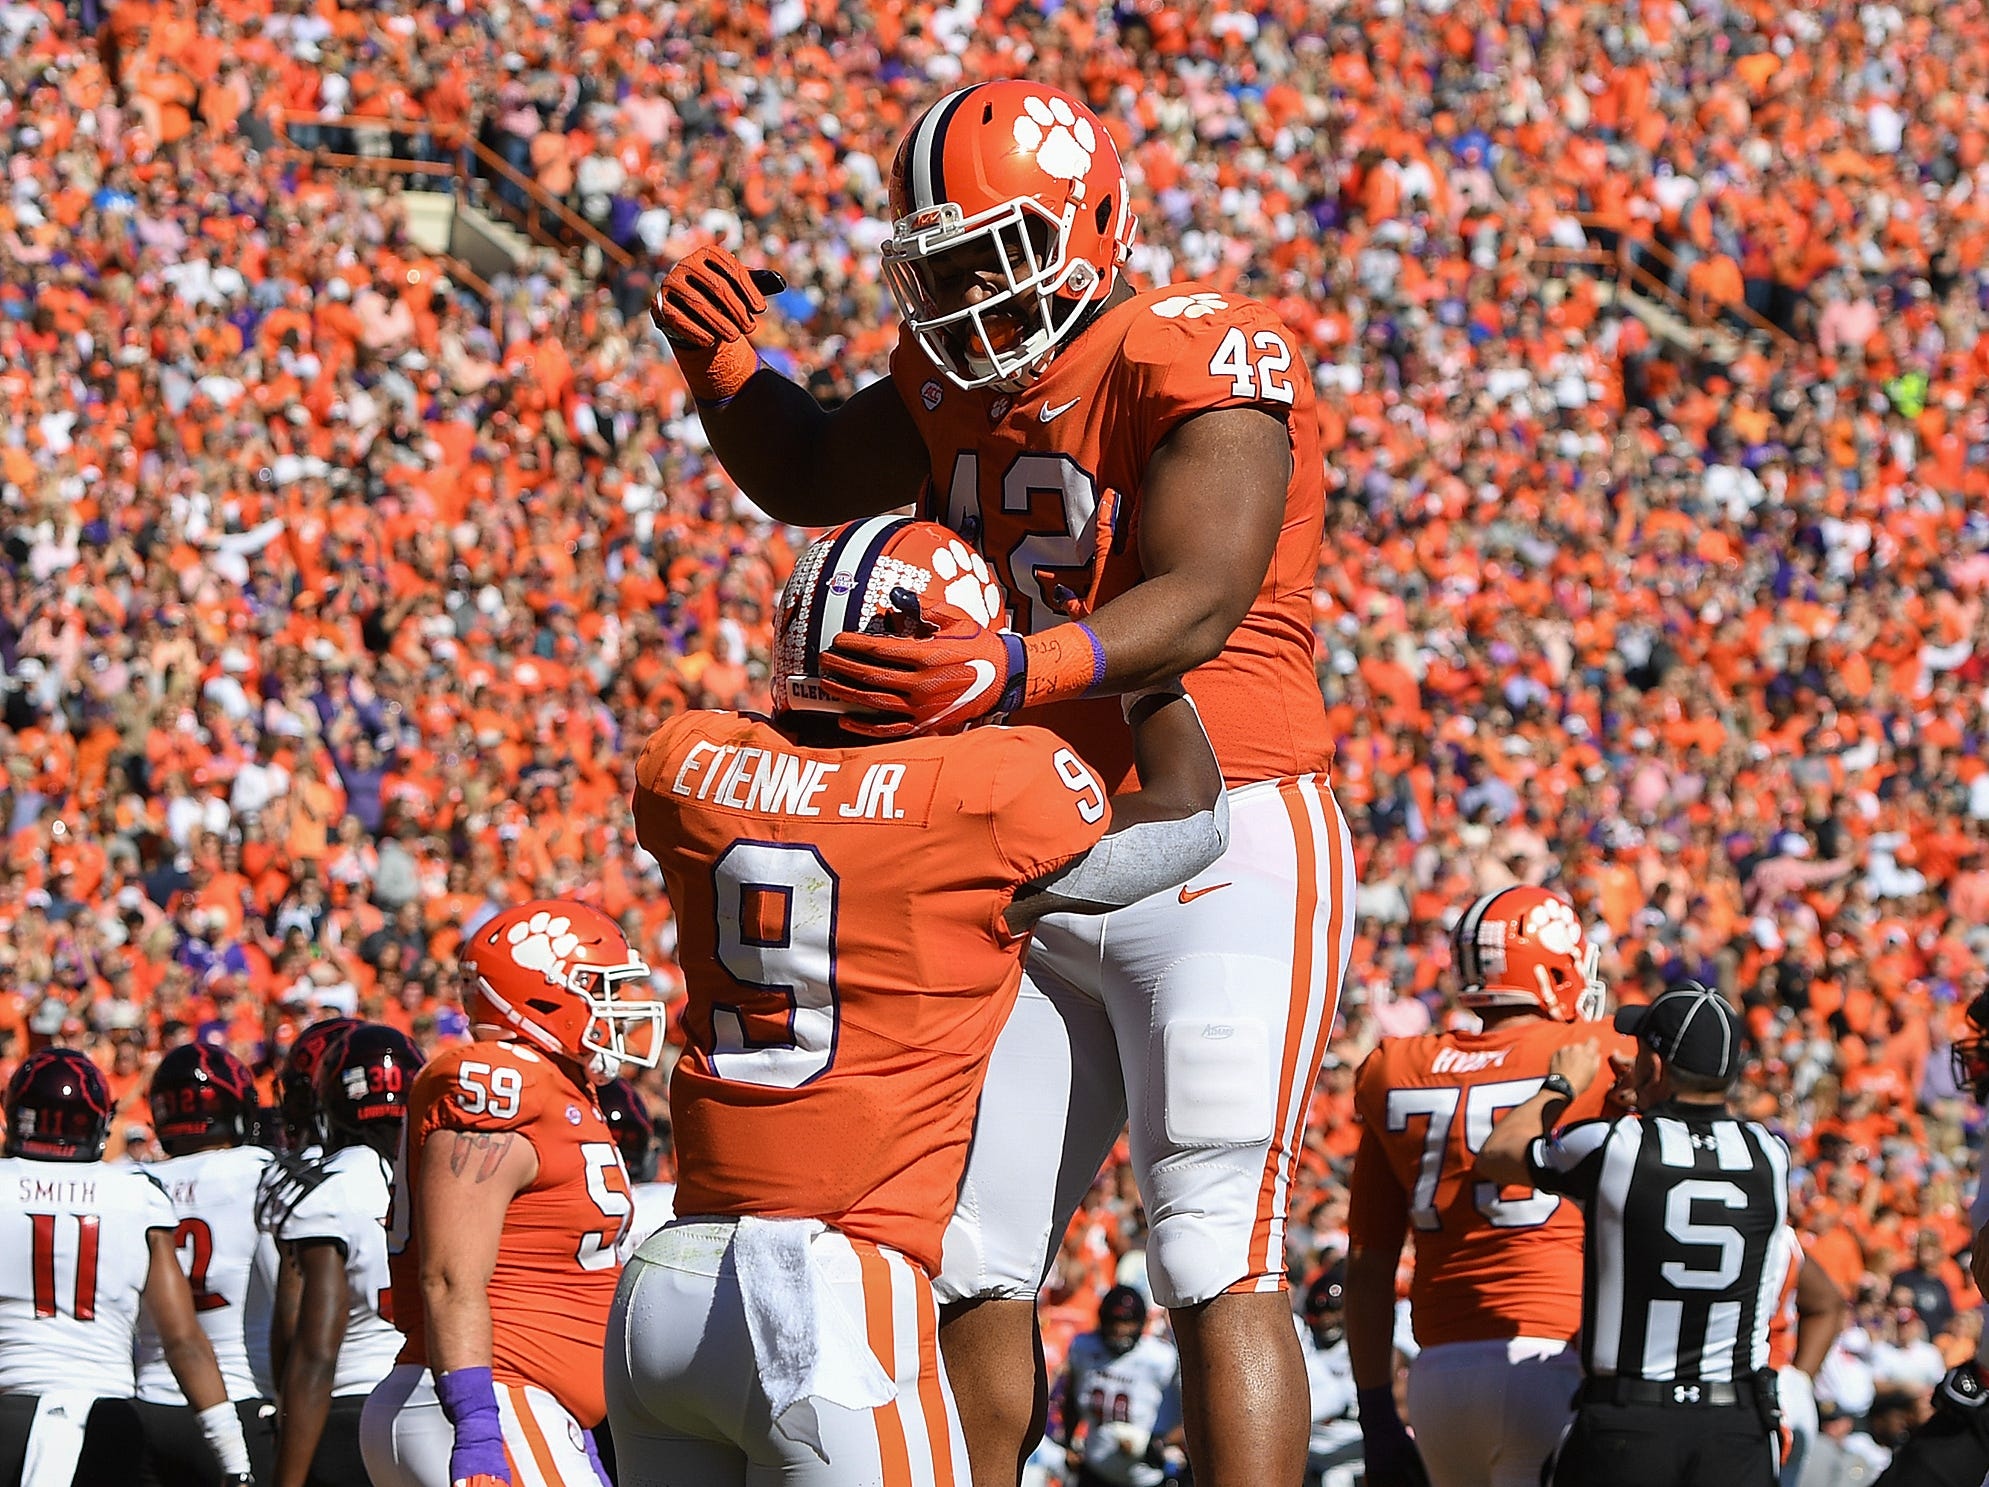 Clemson running back Travis Etienne (9) celebrates with defensive lineman Christian Wilkins (42) after scoring against Louisville during the 1st quarter Saturday, November 3, 2018 at Clemson's Memorial Stadium.